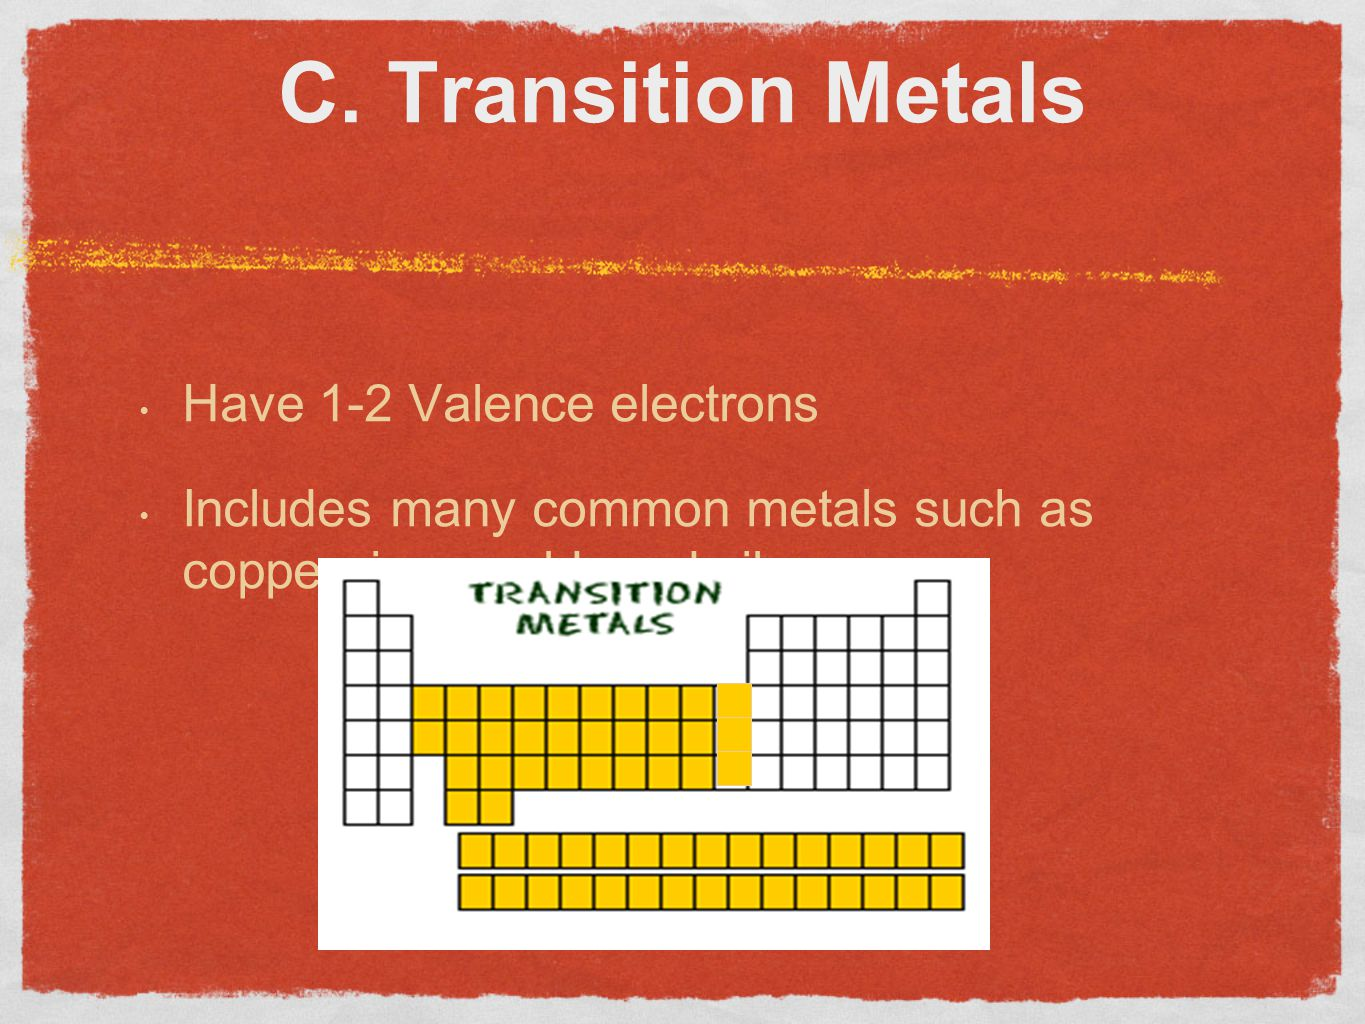 C. Transition Metals Have 1-2 Valence electrons